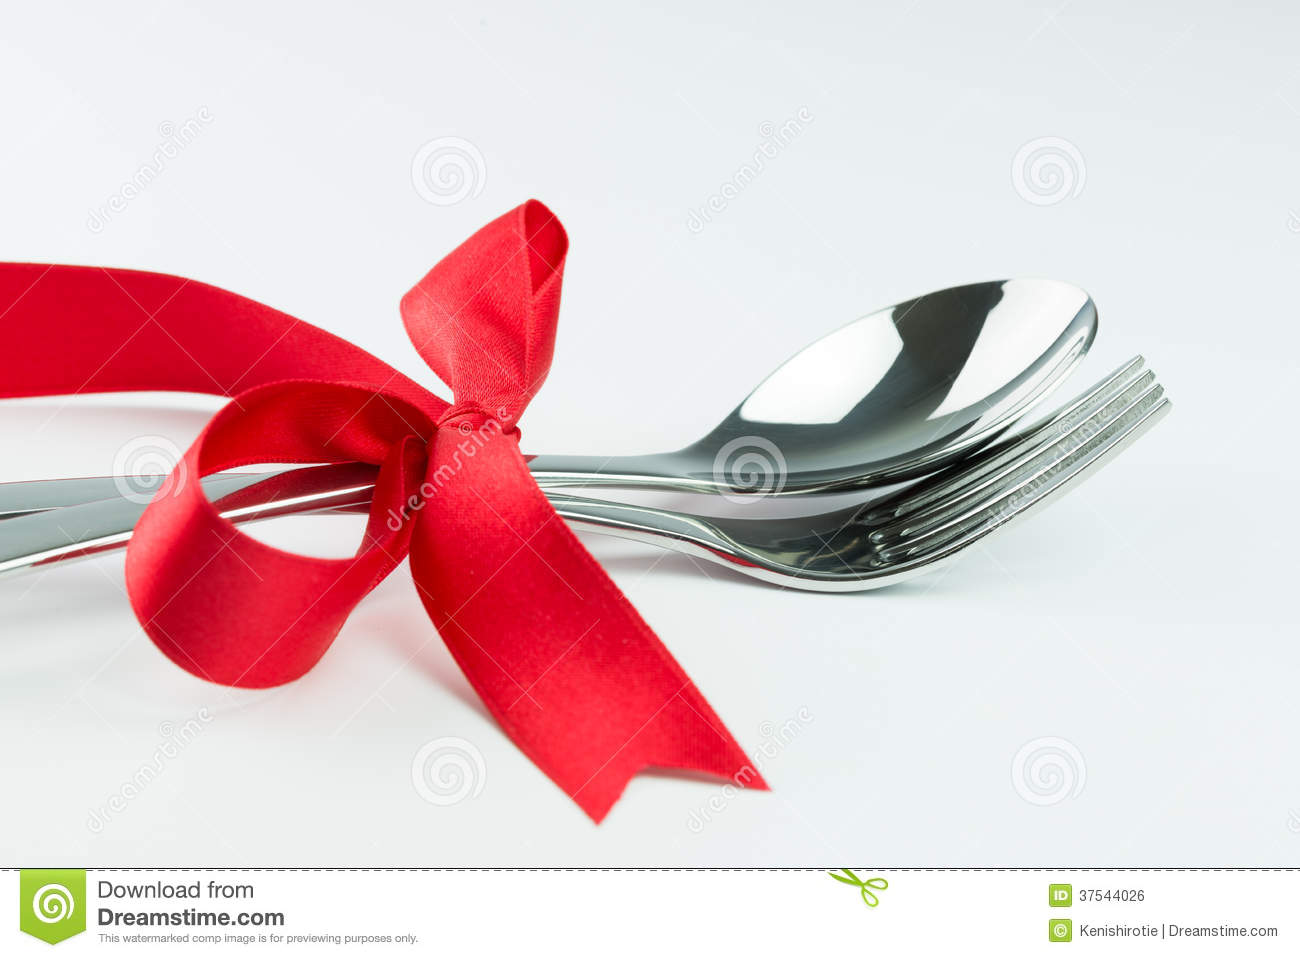 Fork Knife And Spoon Tied Up With Red Ribbon Royalty Free